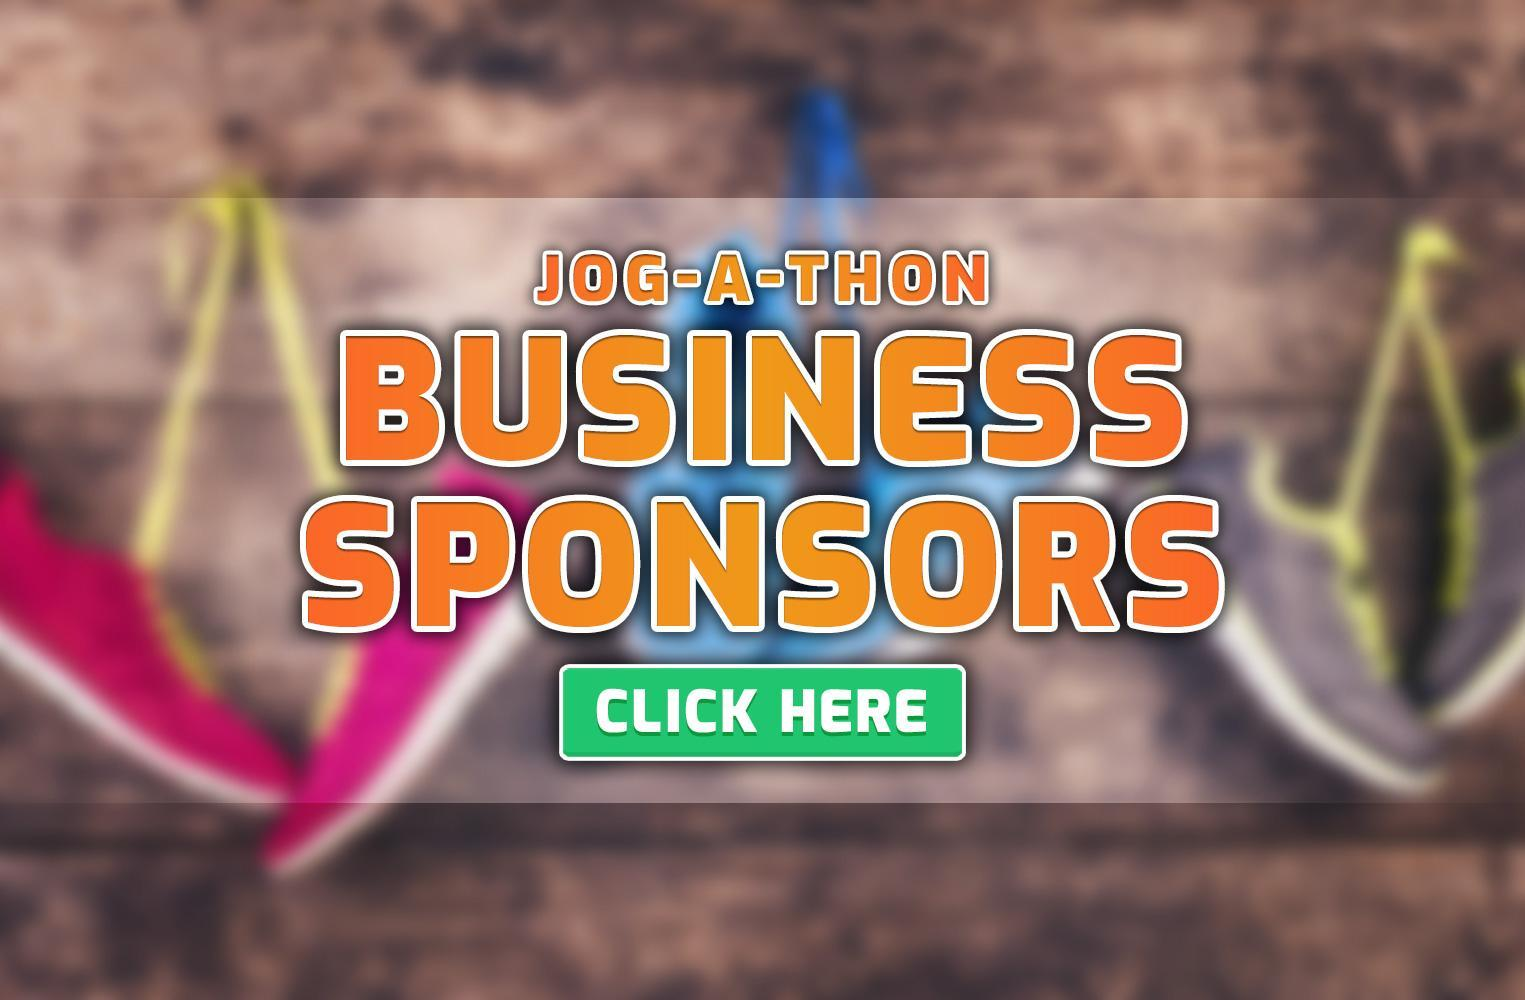 Jog-A-Thon Business Sponsorship Opportunities